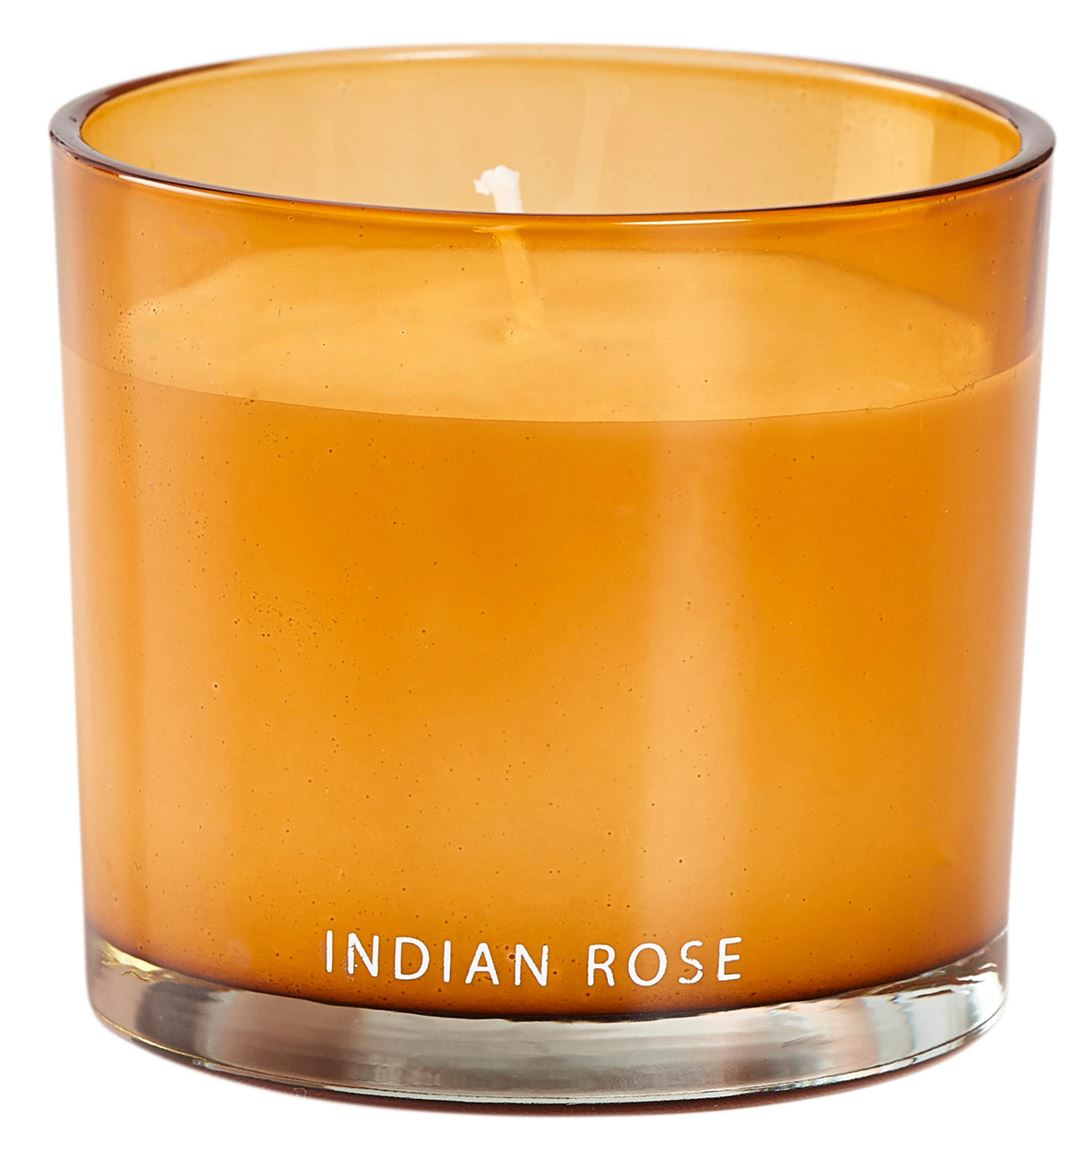 INDIAN ROSE Geurkaars in glas H 7,5 cm; Ø 8 cm_indian-rose-geurkaars-in-glas-h-7,5-cm;-ø-8-cm